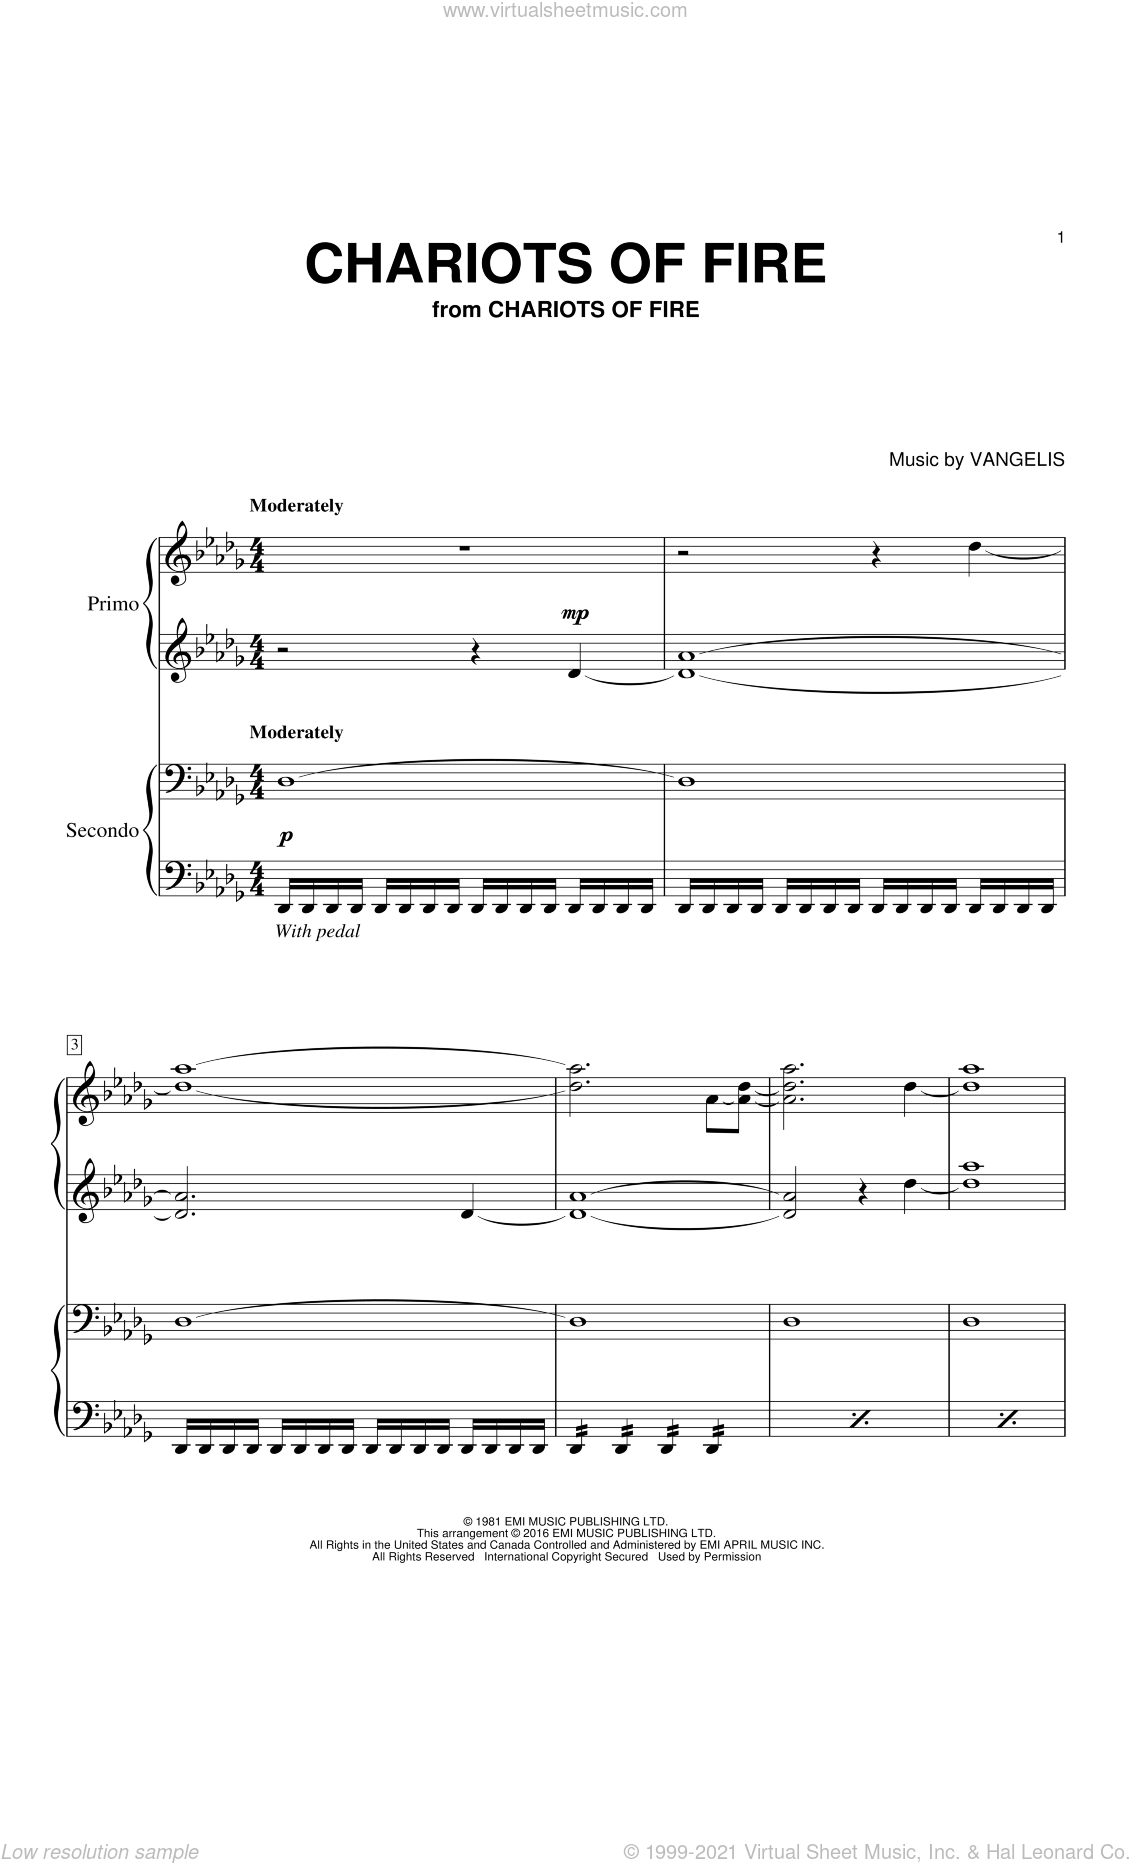 Chariots Of Fire sheet music for piano four hands (duets) by Vangelis